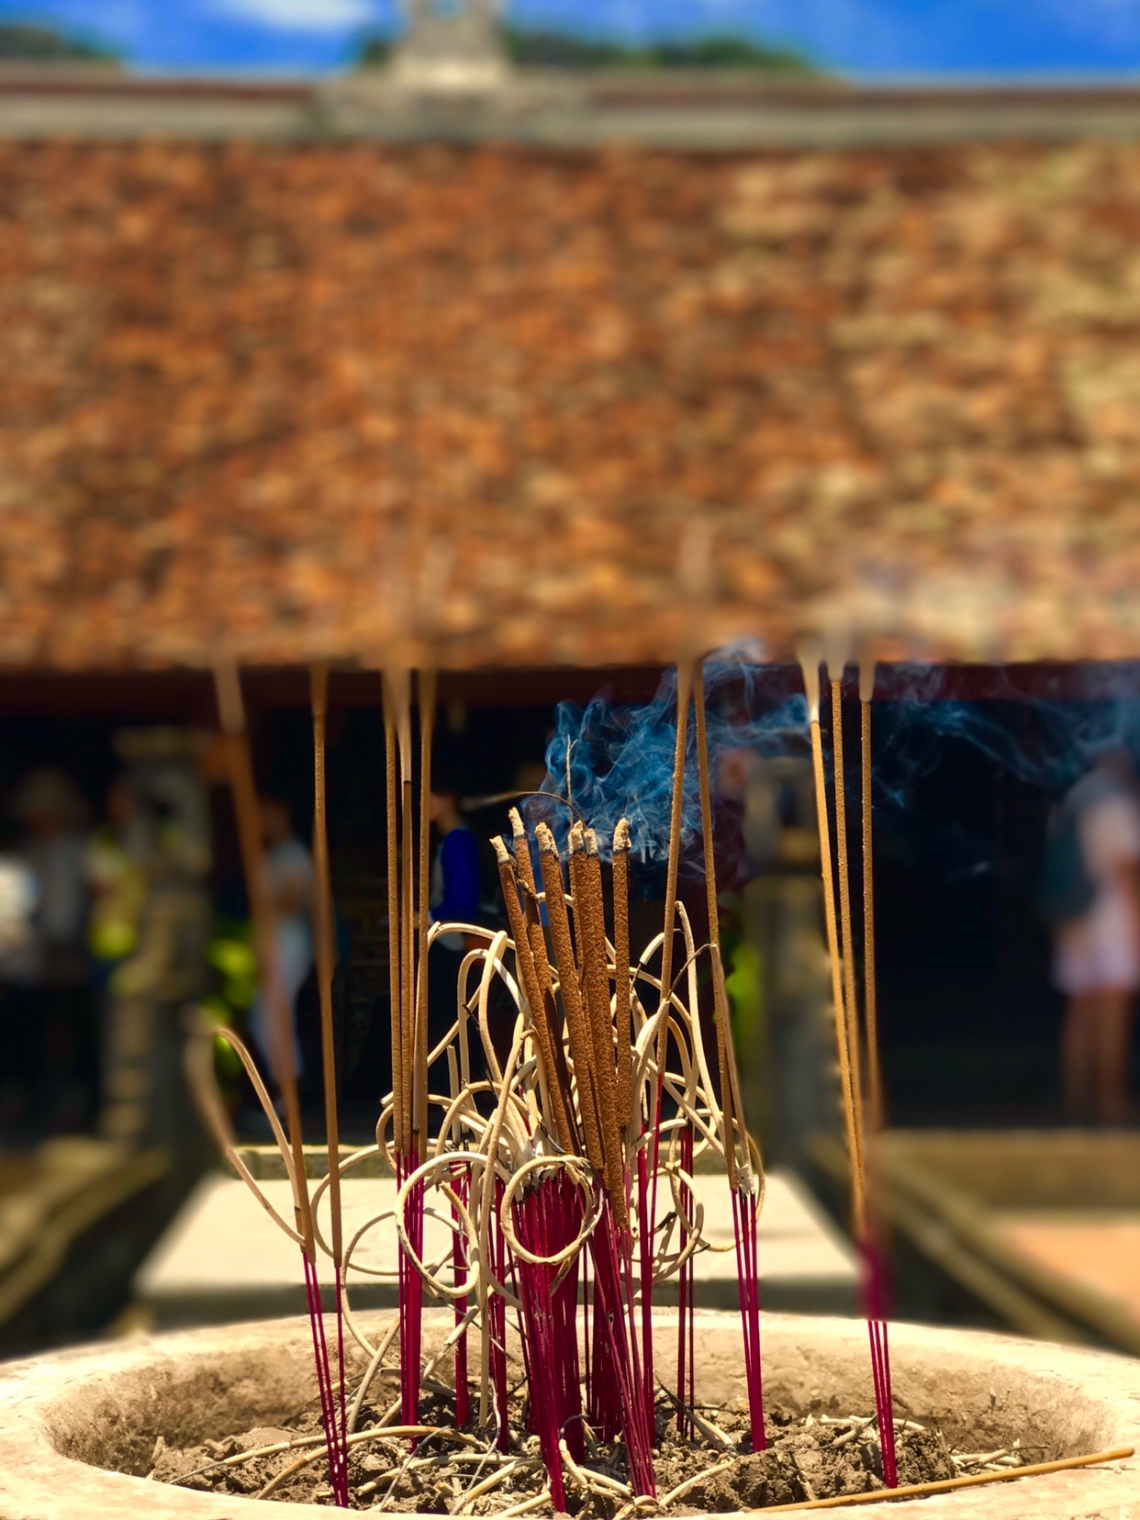 The Buring incense. Beautiful.